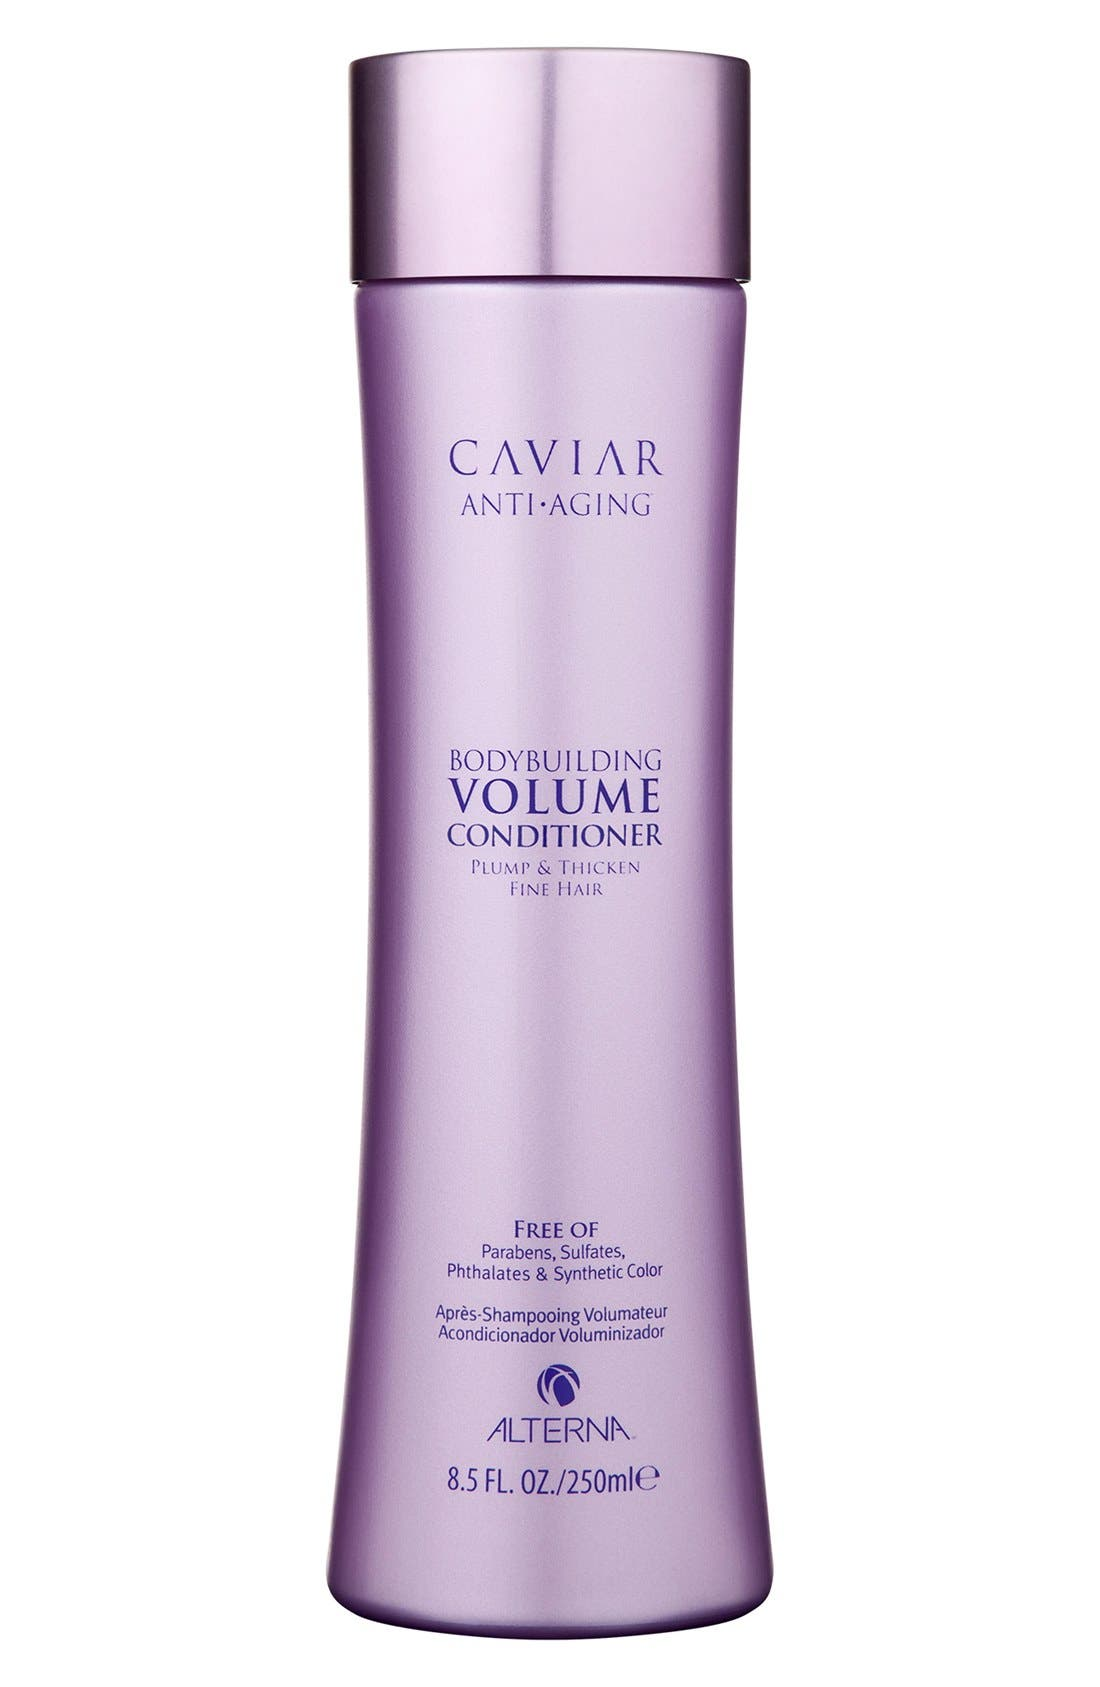 ALTERNA® Caviar Anti-Aging Bodybuilding Volume Conditioner